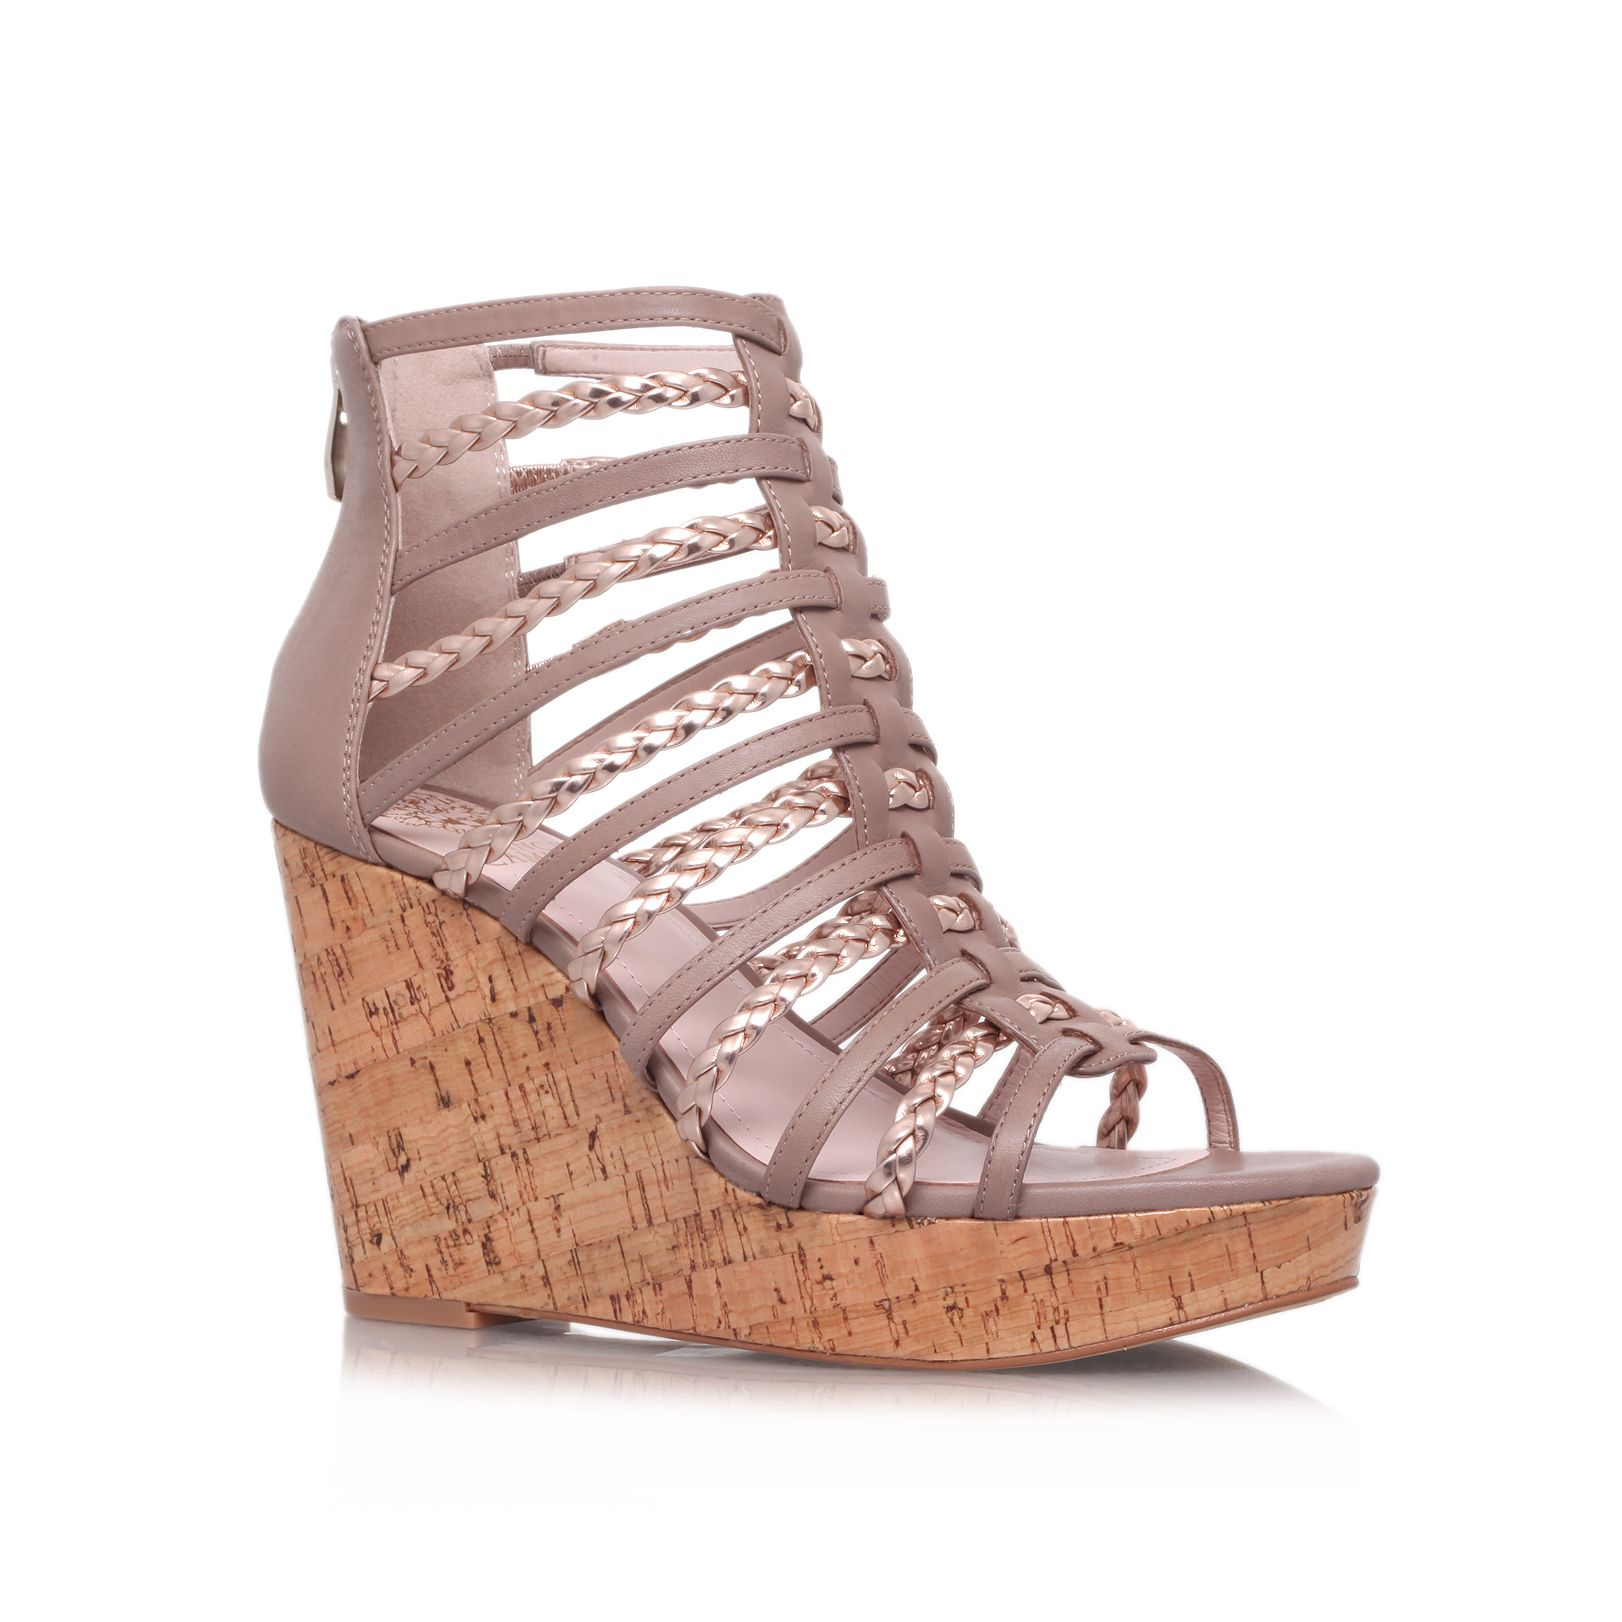 Tongah wedge shoes